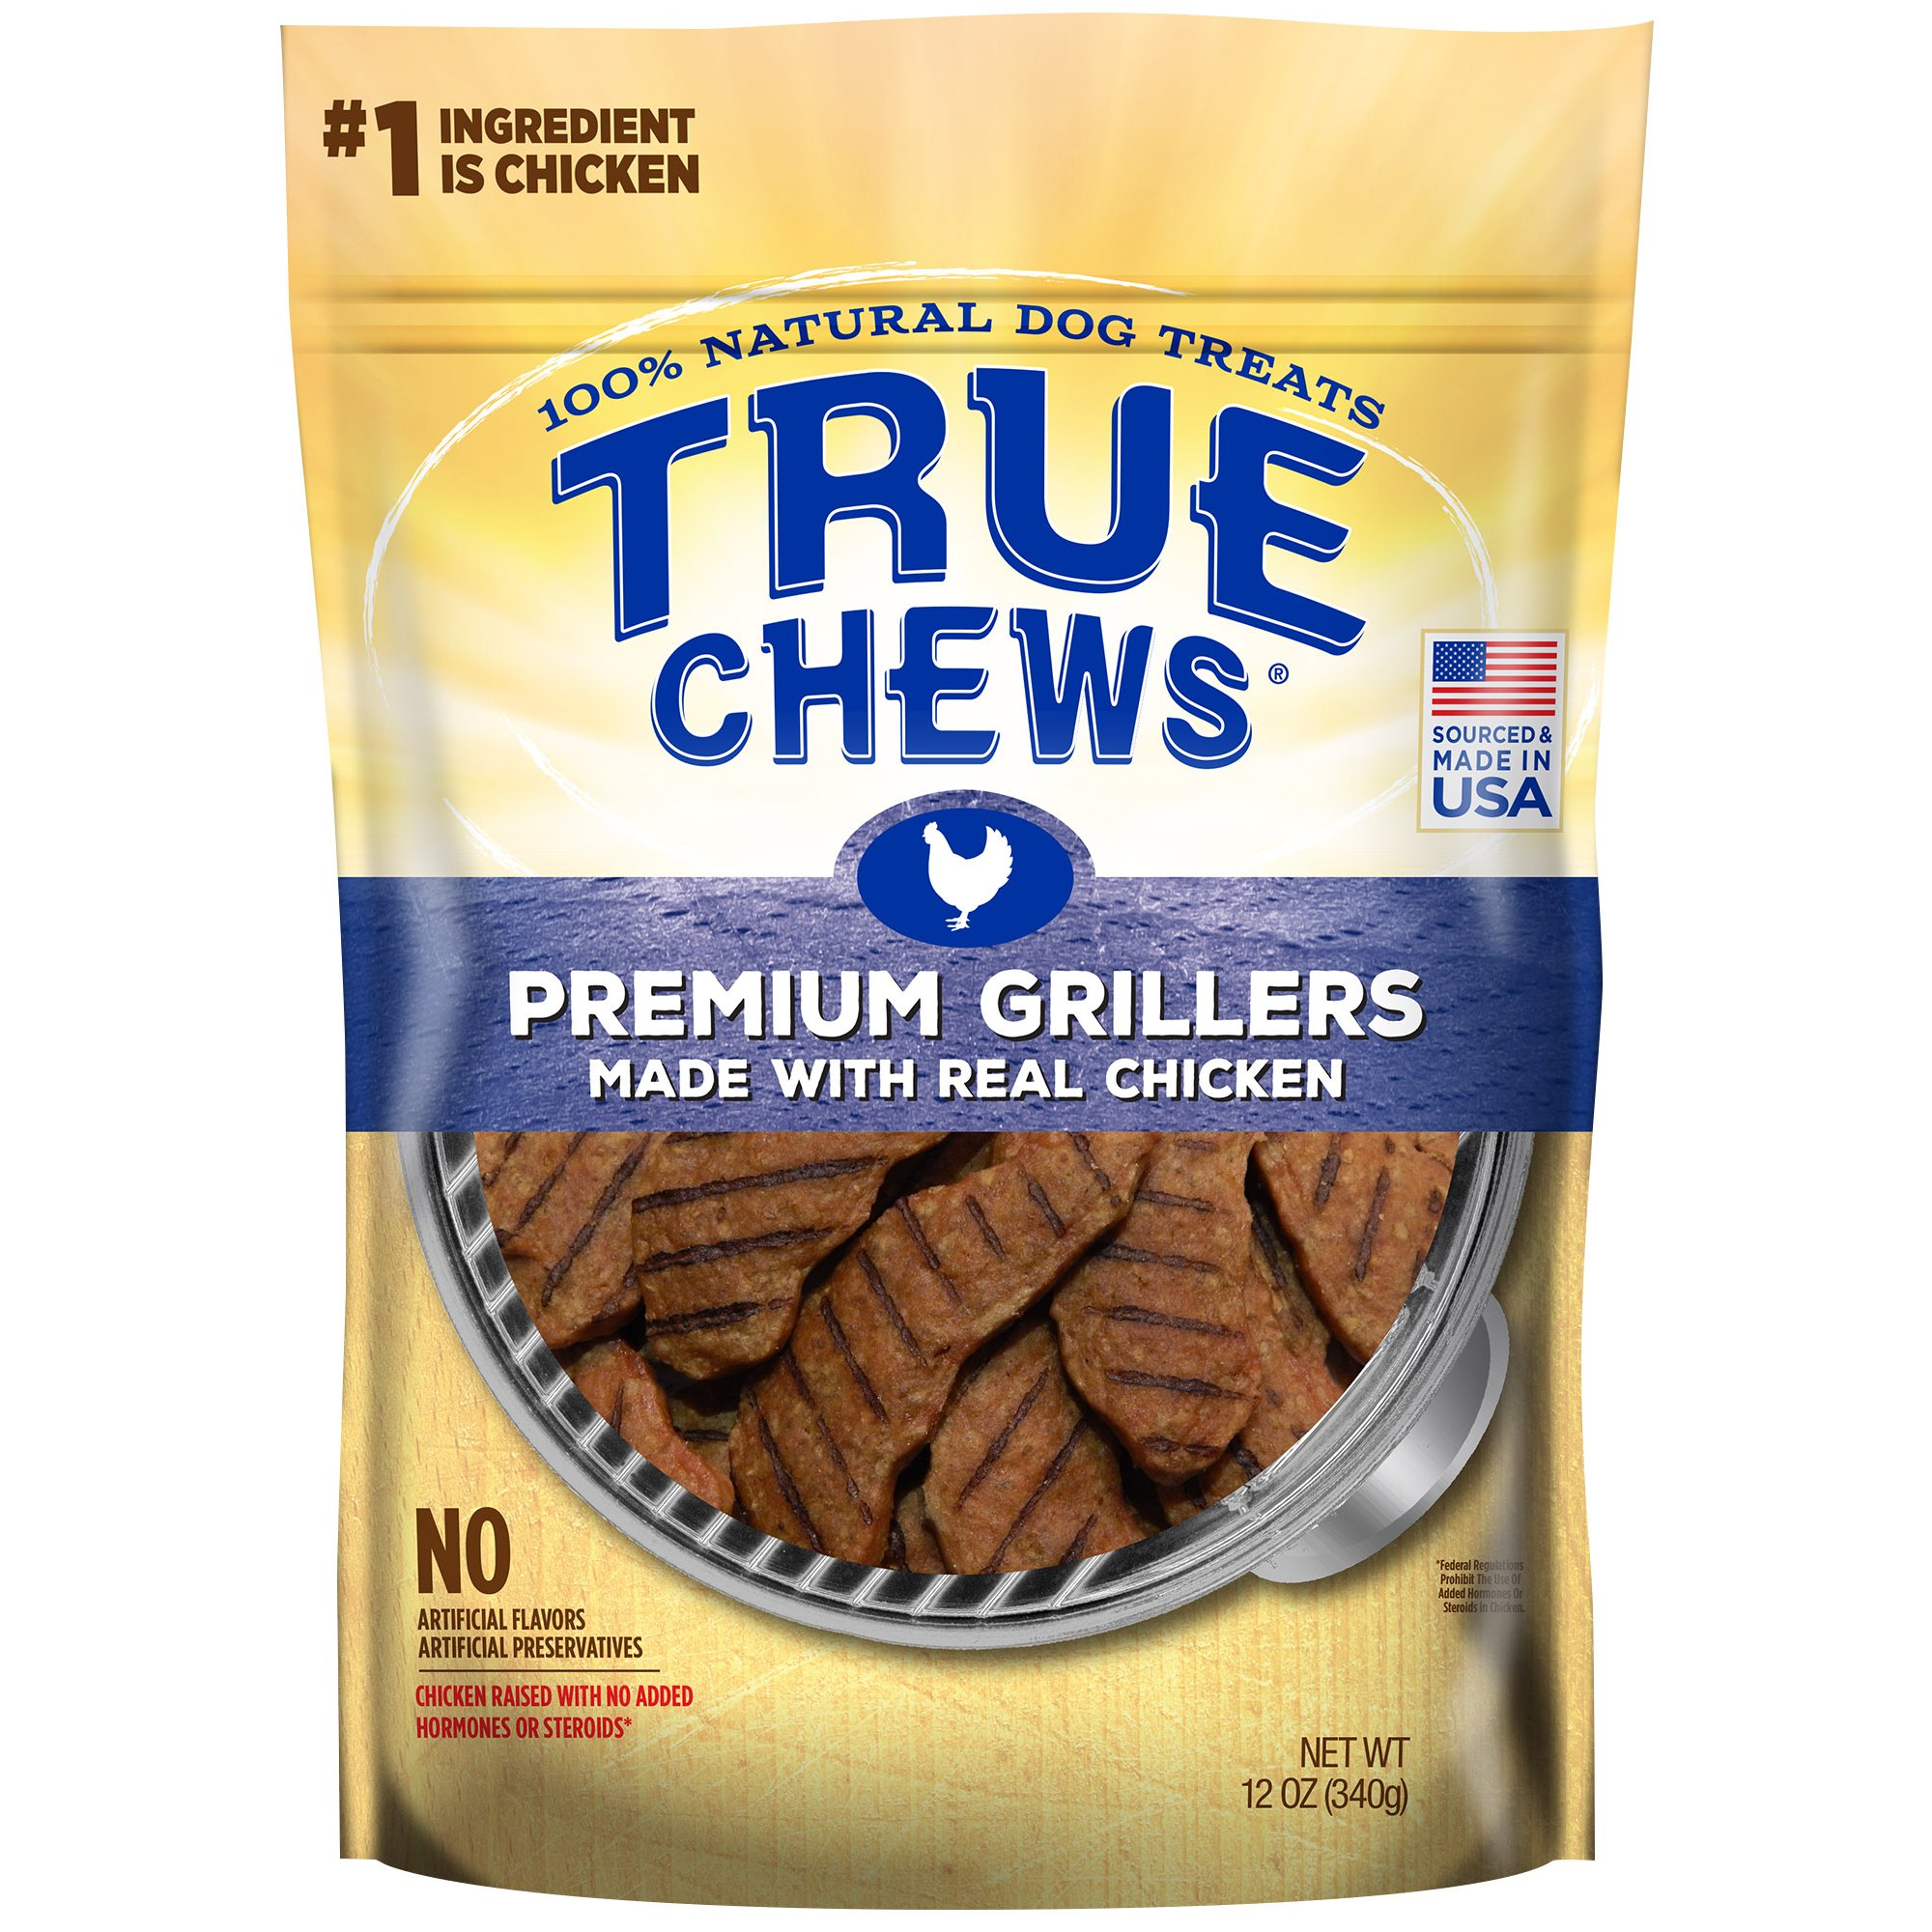 Where Can I Find True Chews Dog Treats